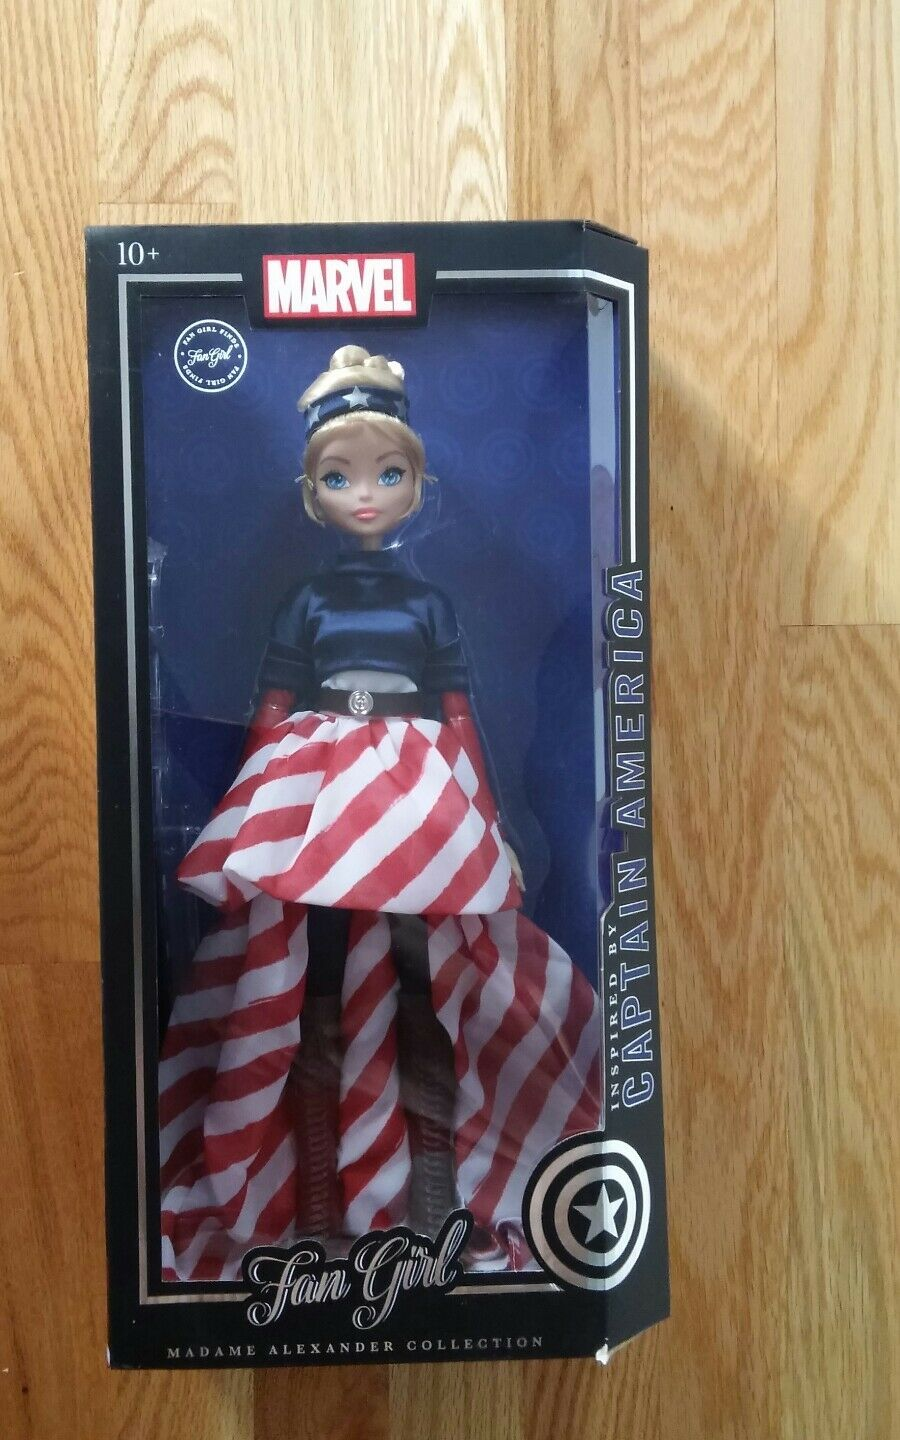 Marvel Fan girl Captain America Variant Doll Madame Alexander 13.5 inch NiB